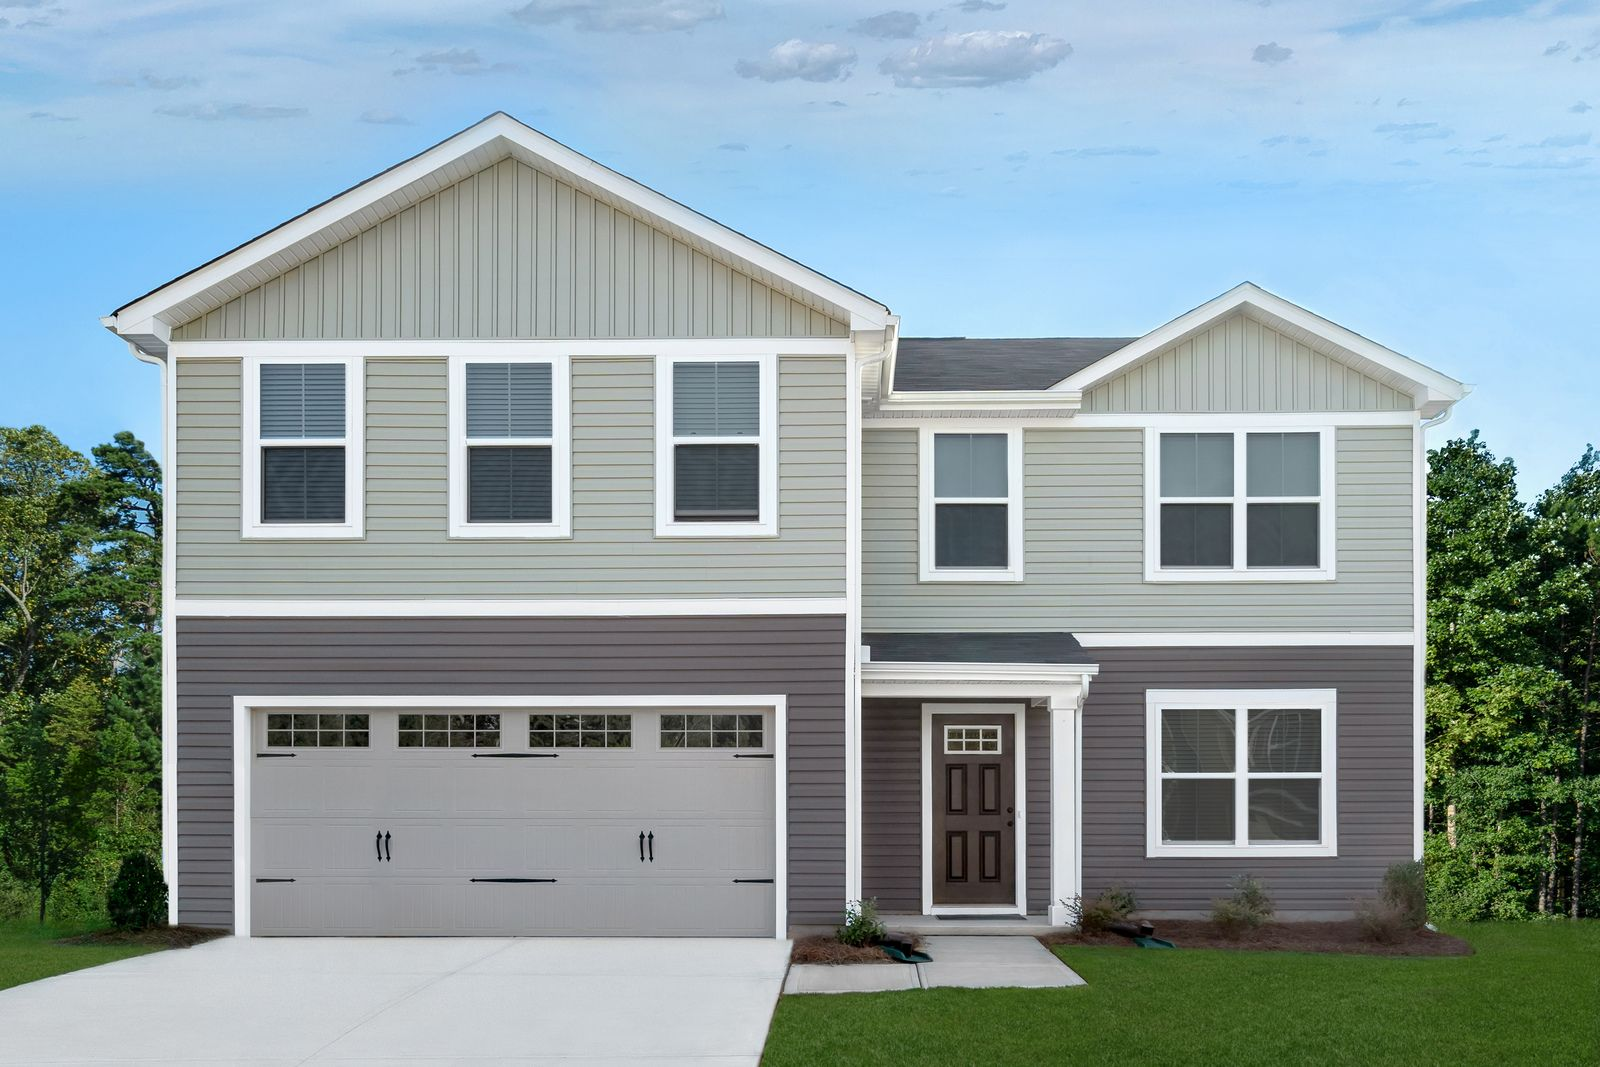 Own a new home for the same or less than rent in Mauldin. From the $190s.:Homeownership is easier than you think! All GE appliances are included and there are options for 0% USDA financing!Join the VIP listto learn how!